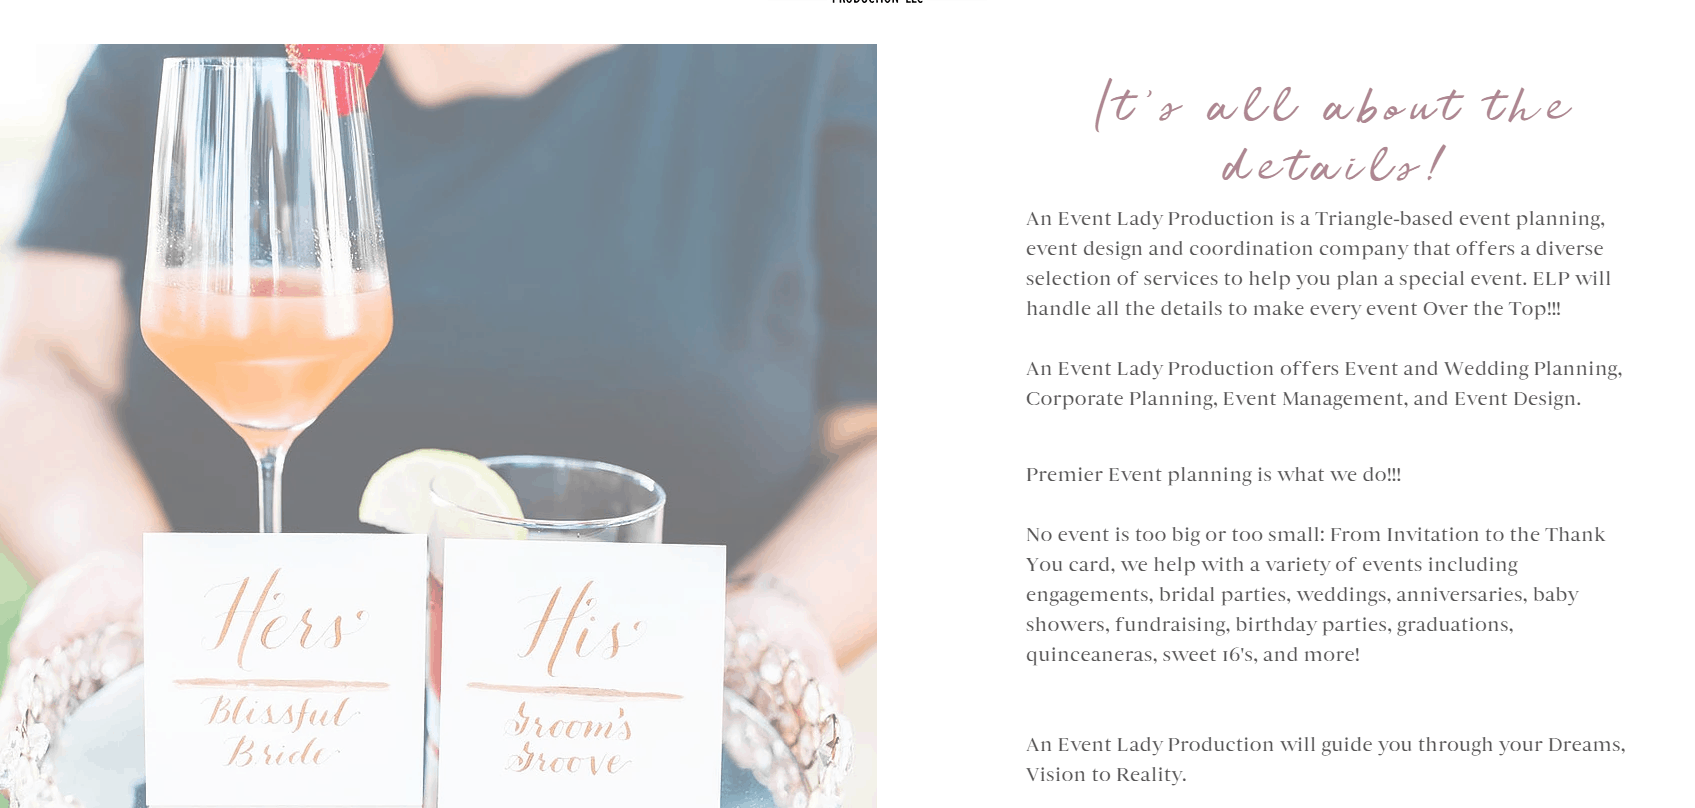 About page 1 -  An Event Lady Production Website